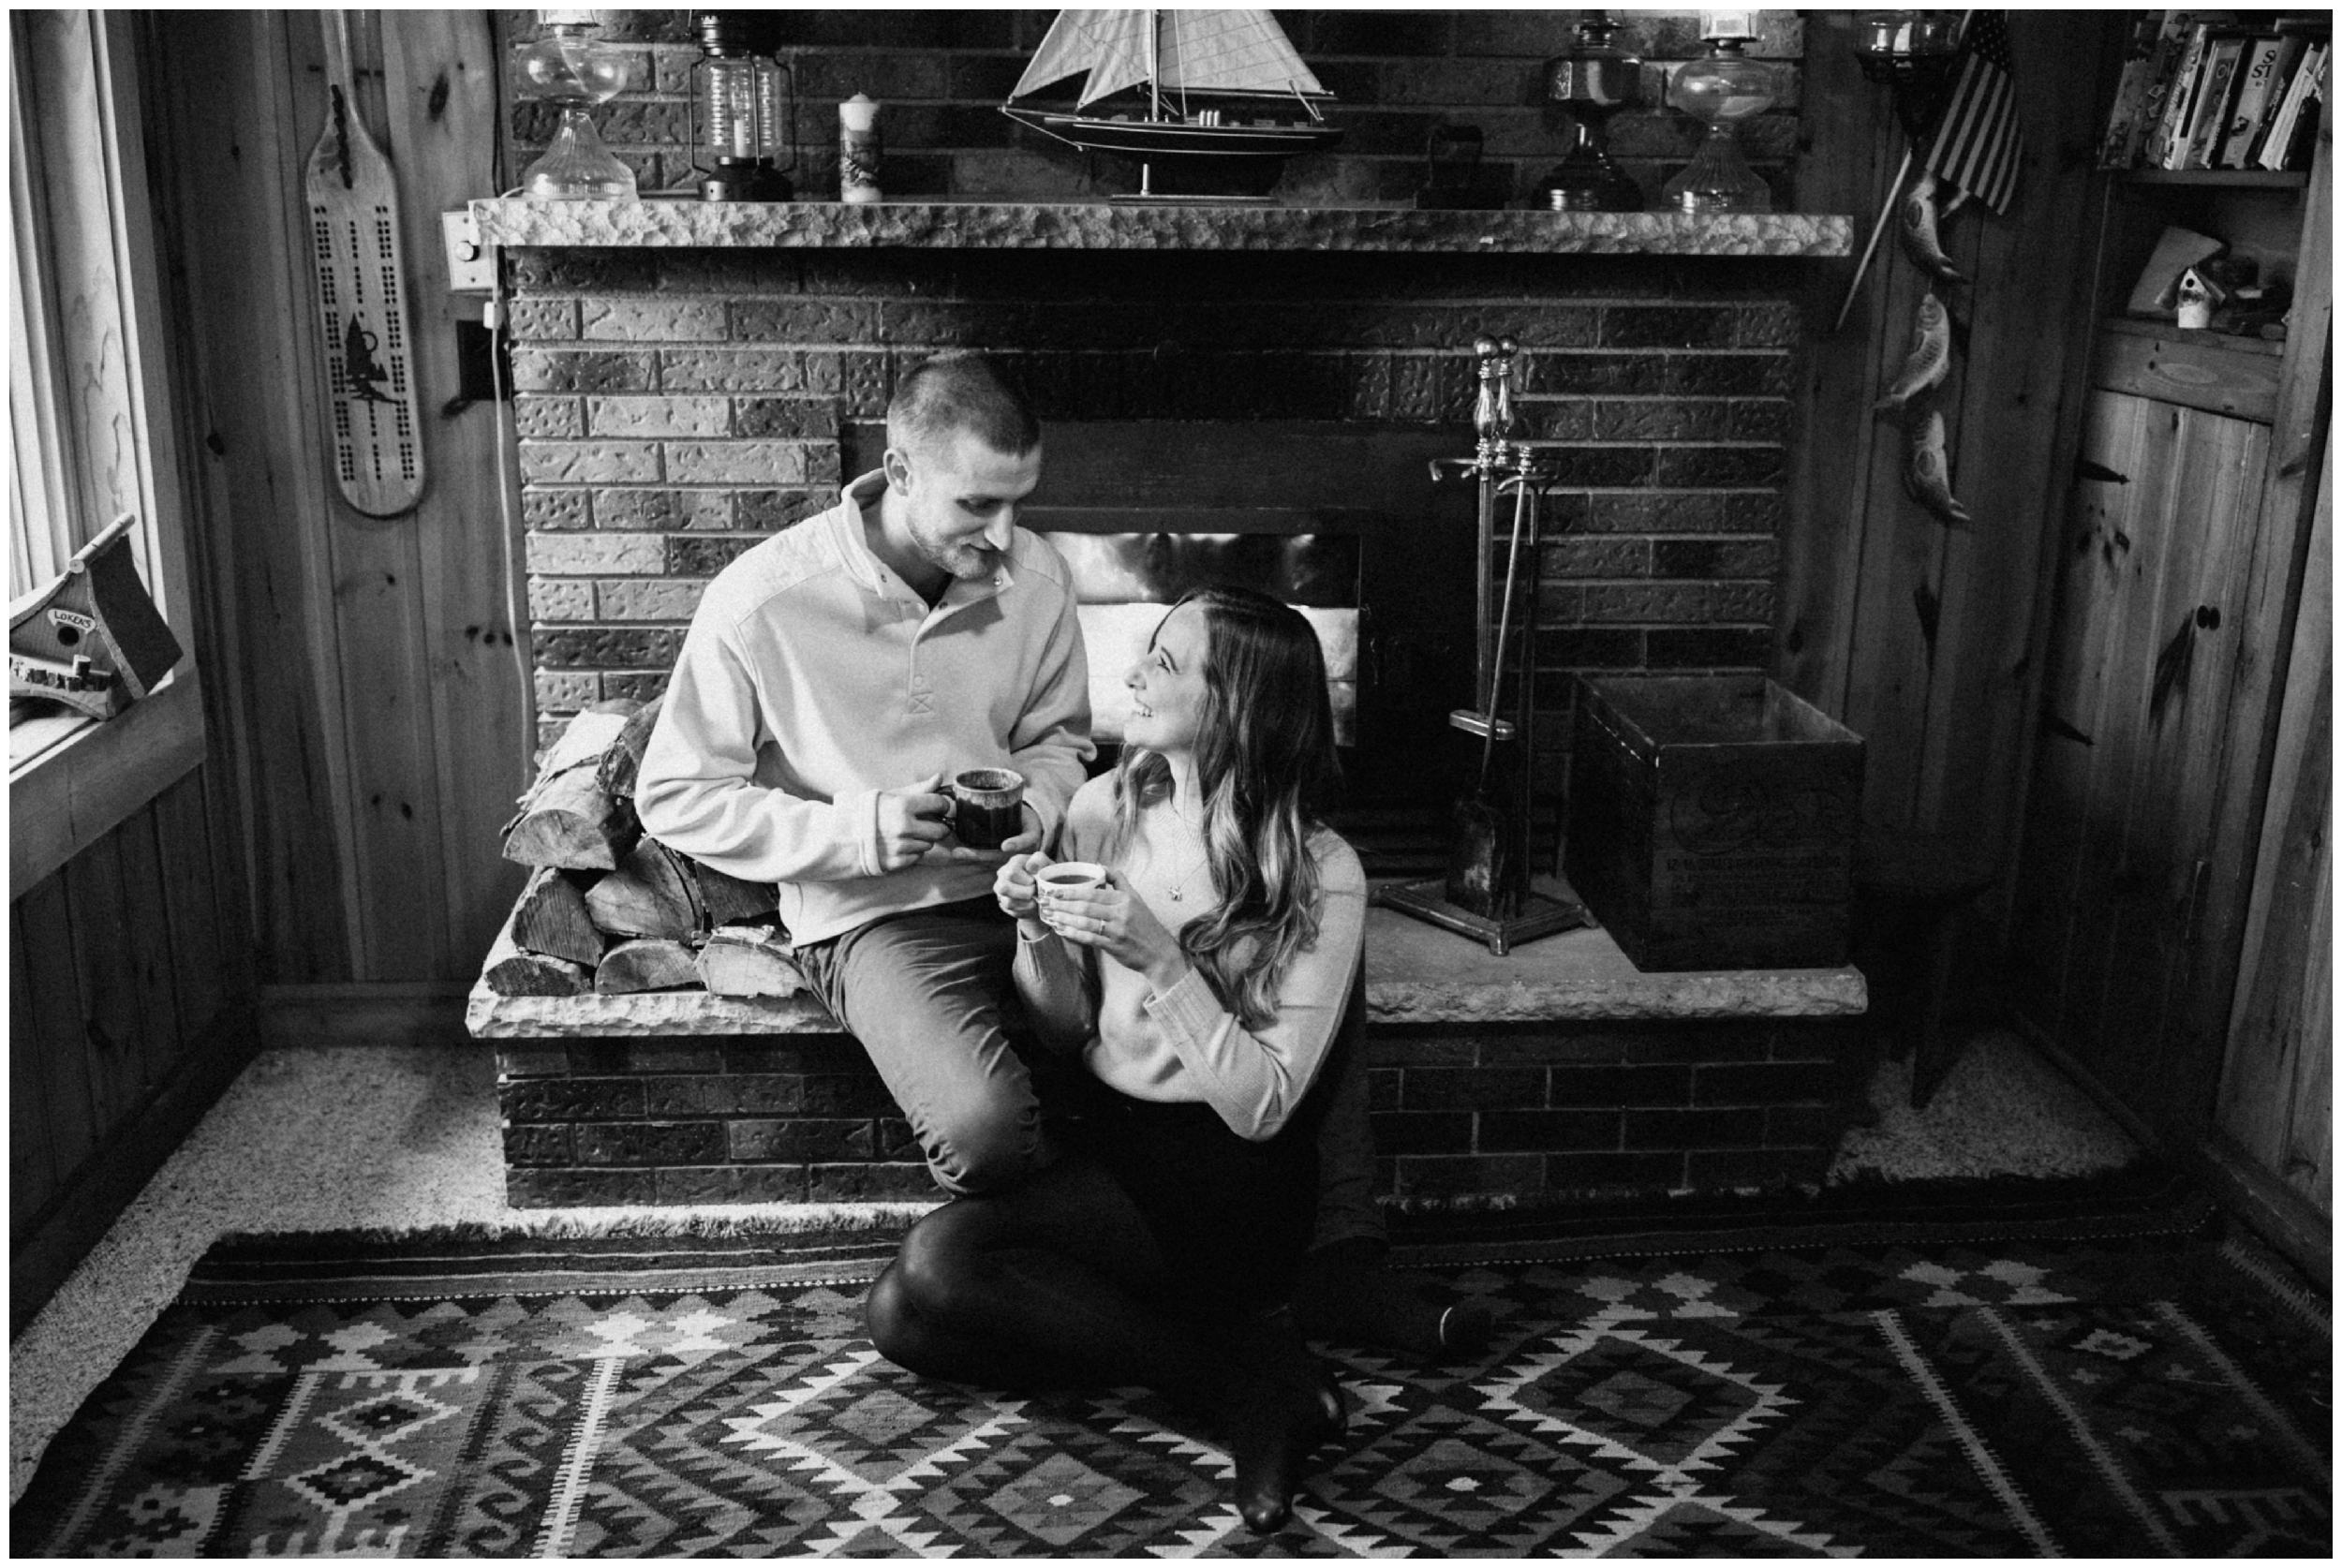 Cabin engagement shoot with morning coffee by the fireplace in the northwoods of Minnesota